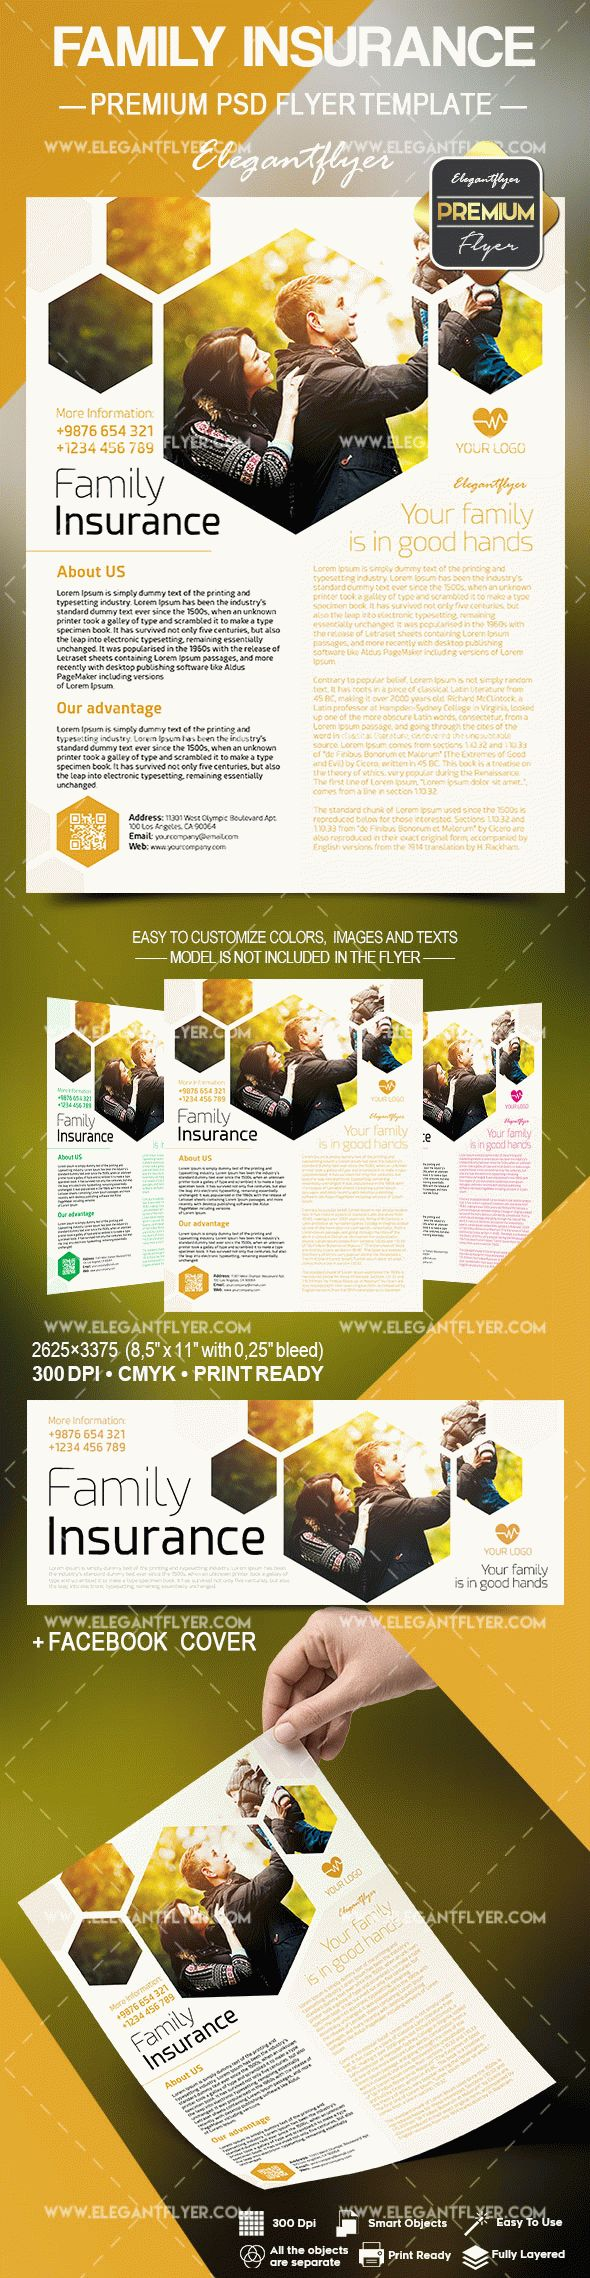 Family Insurance PSD Template